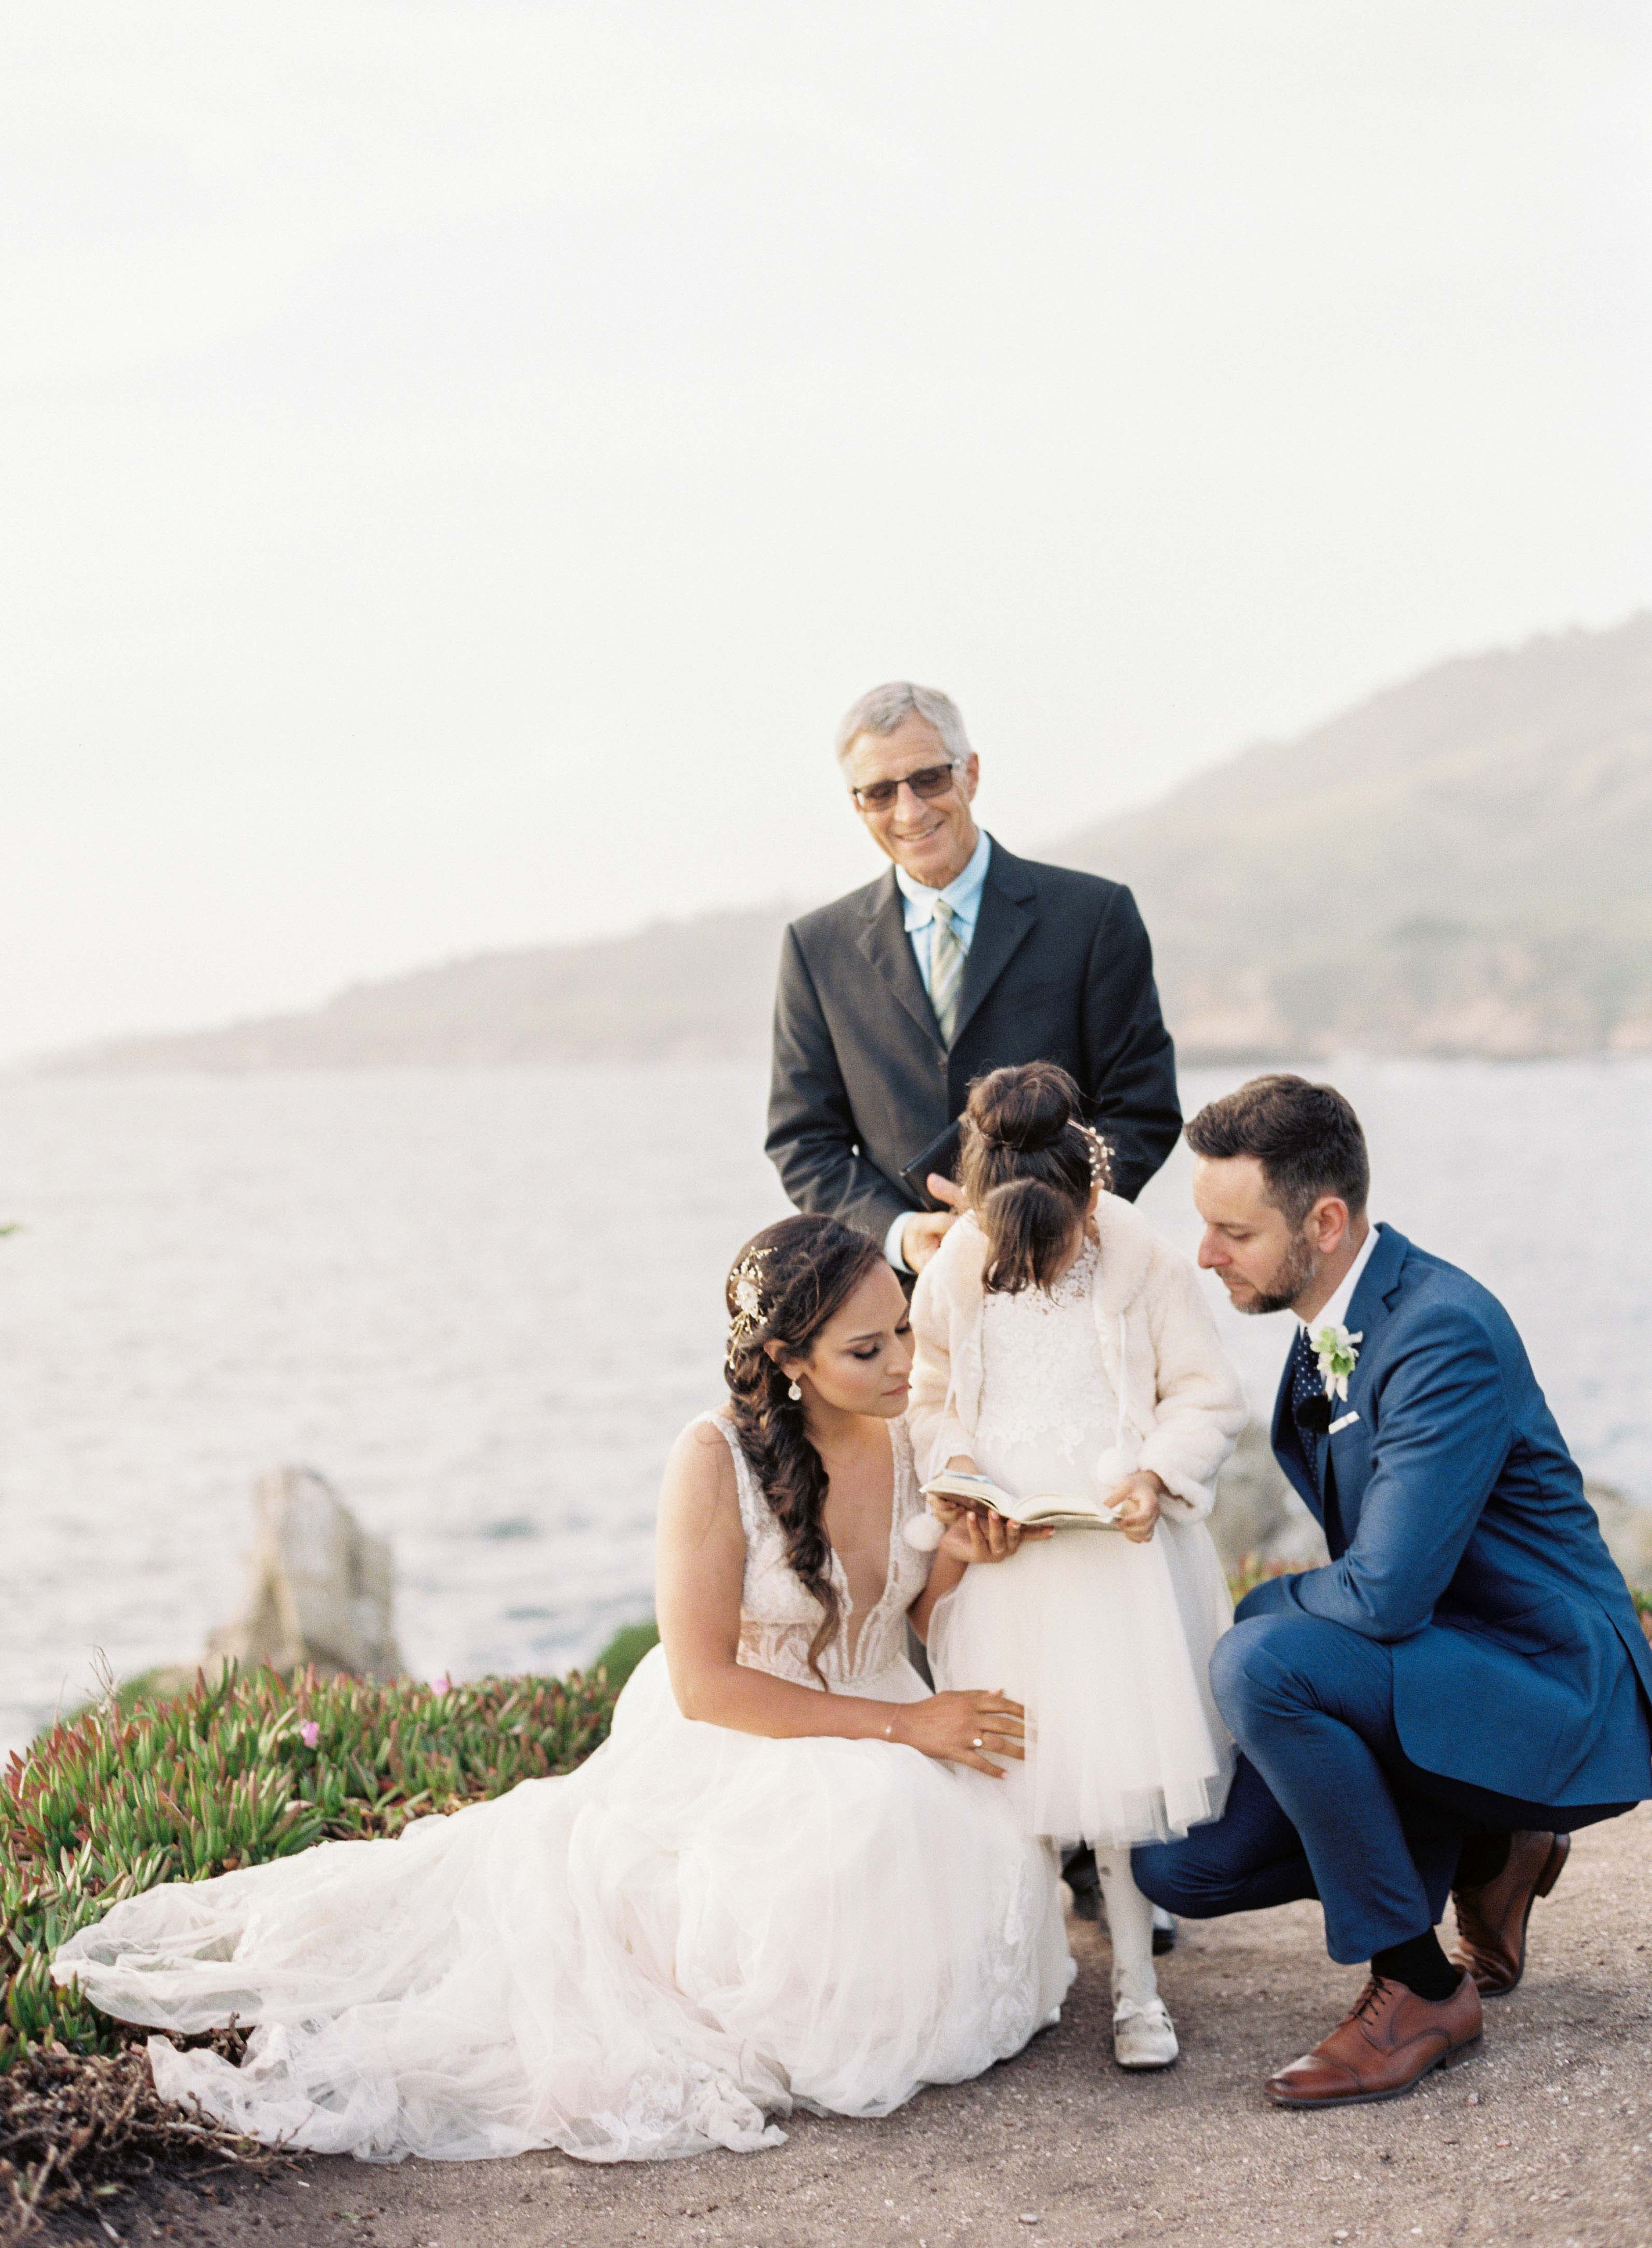 bride and groom kneel by girl outside wedding ceremony